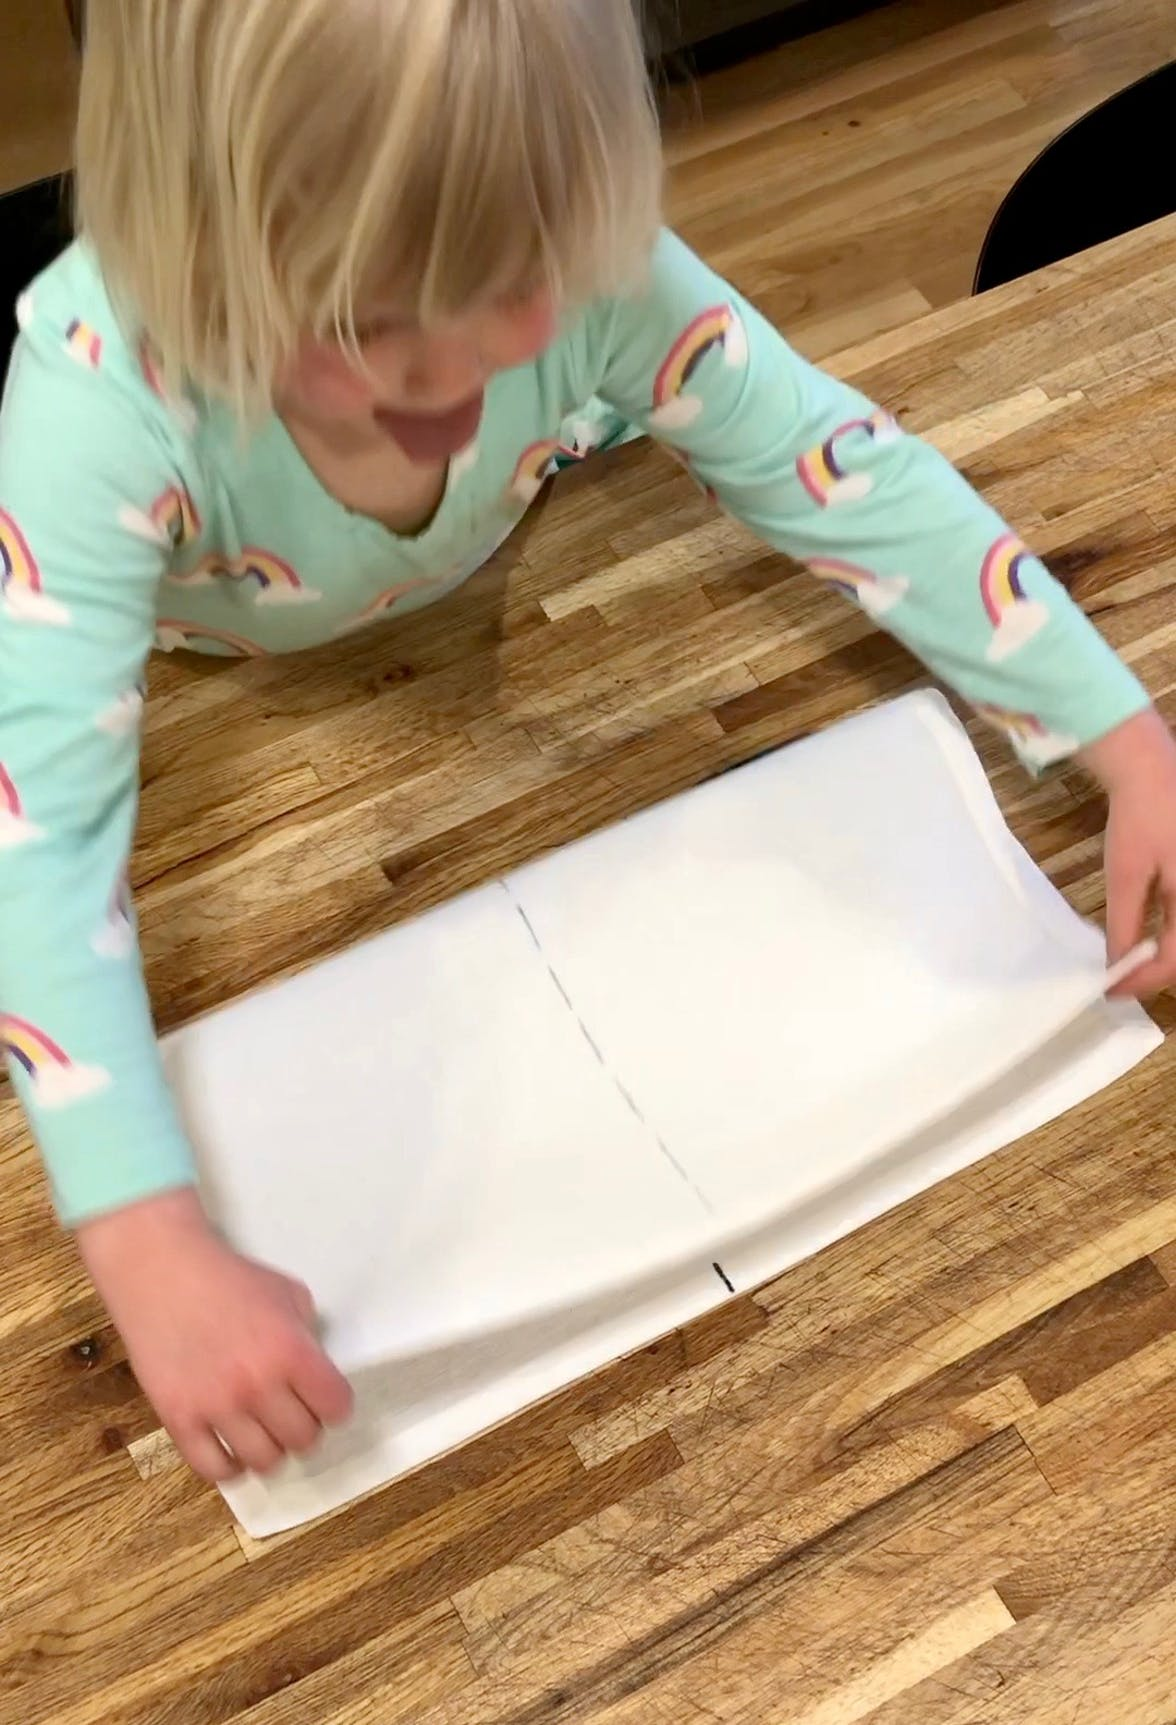 Young child folding a napkin in half